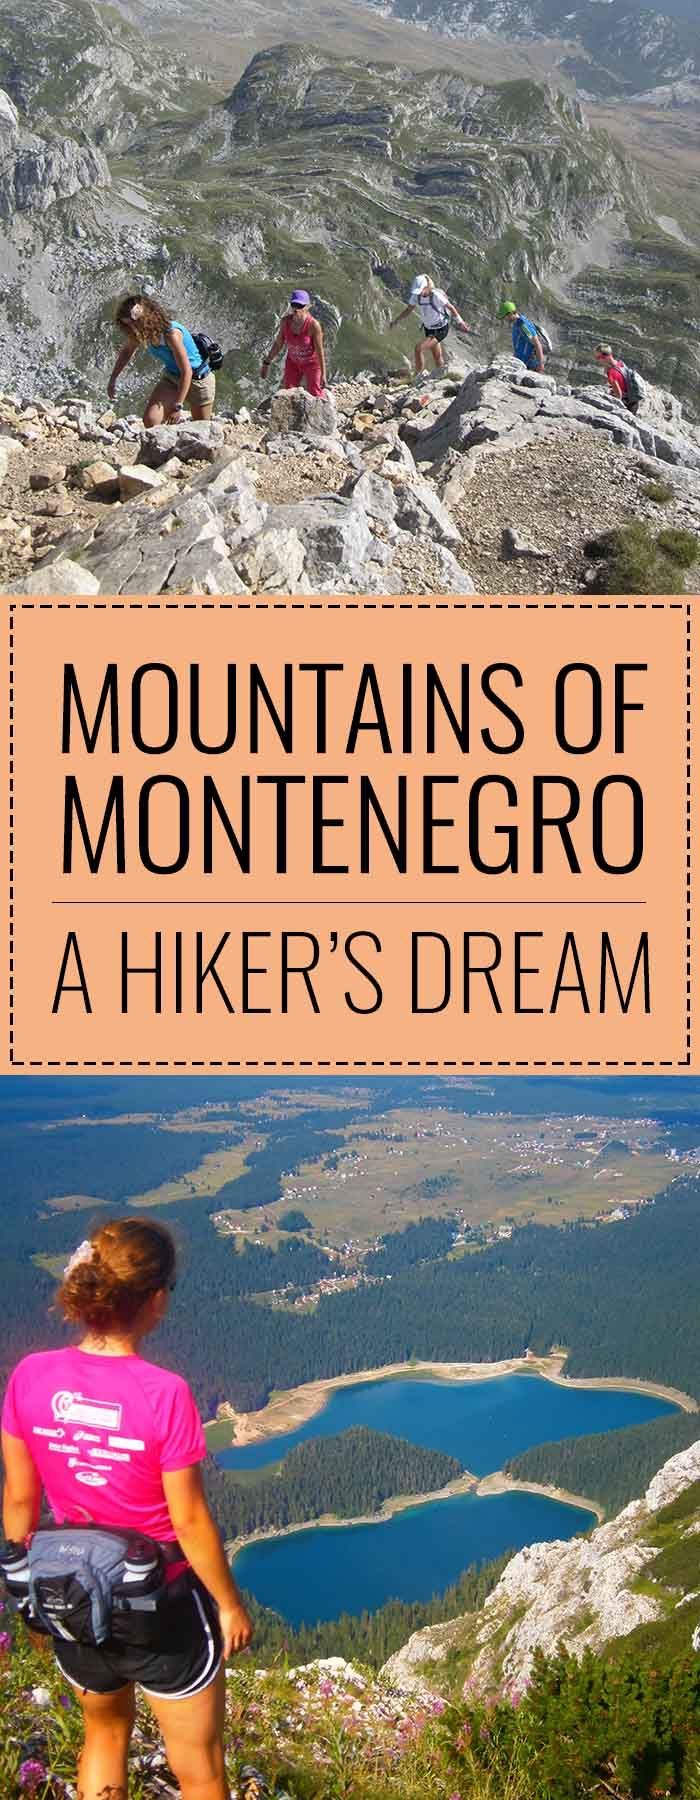 Durmitor A Mountain Range Of Montenegro Always Leaves Me Breathless With Its Views